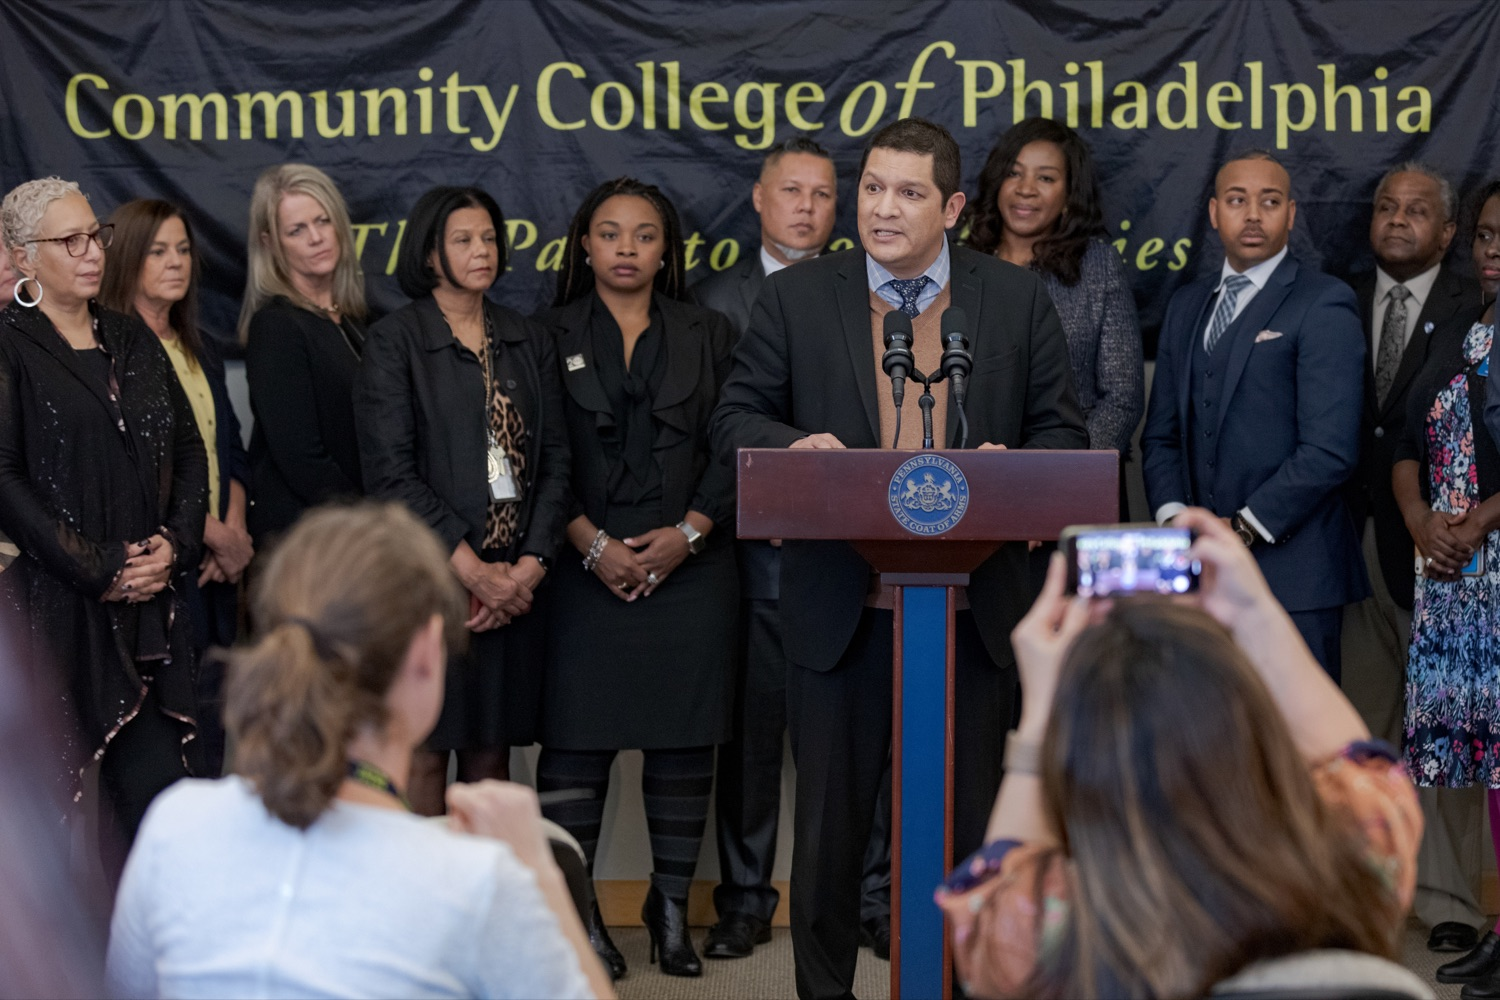 "<a href=""http://filesource.abacast.com/commonwealthofpa/photo/17592_EDU_Aspiring_NK_007.JPG"" target=""_blank"">⇣ Download Photo<br></a>Noe Ortega, Pennsylvania deputy secretary for post secondary and higher education, speaks during a press conference, announcing the School District of Philadelphia's new pilot program, Aspiring to Educate, that aims to cultivate and diversify the citys educator pool, inside Community College of Philadelphia's Center for Business and Industry on Wednesday, November 20, 2019."